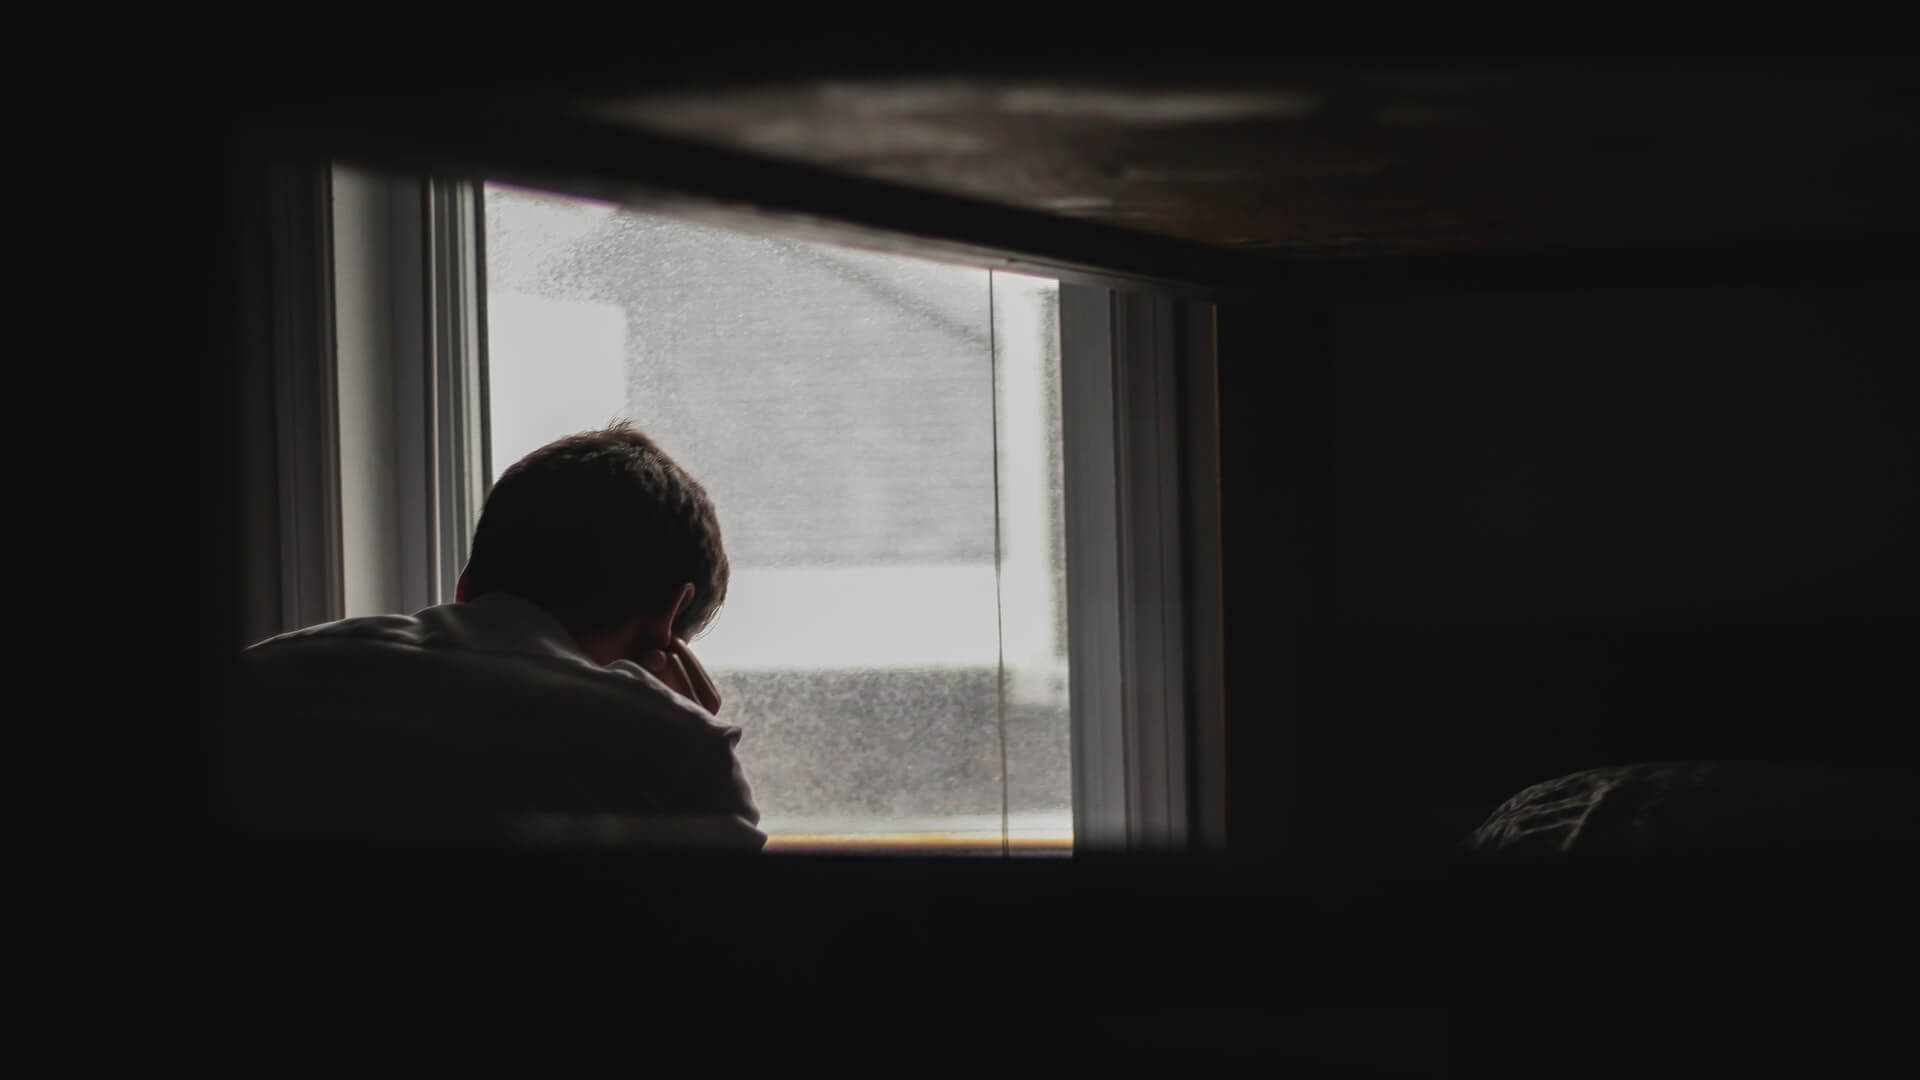 Man holding his forehead while staring at the window